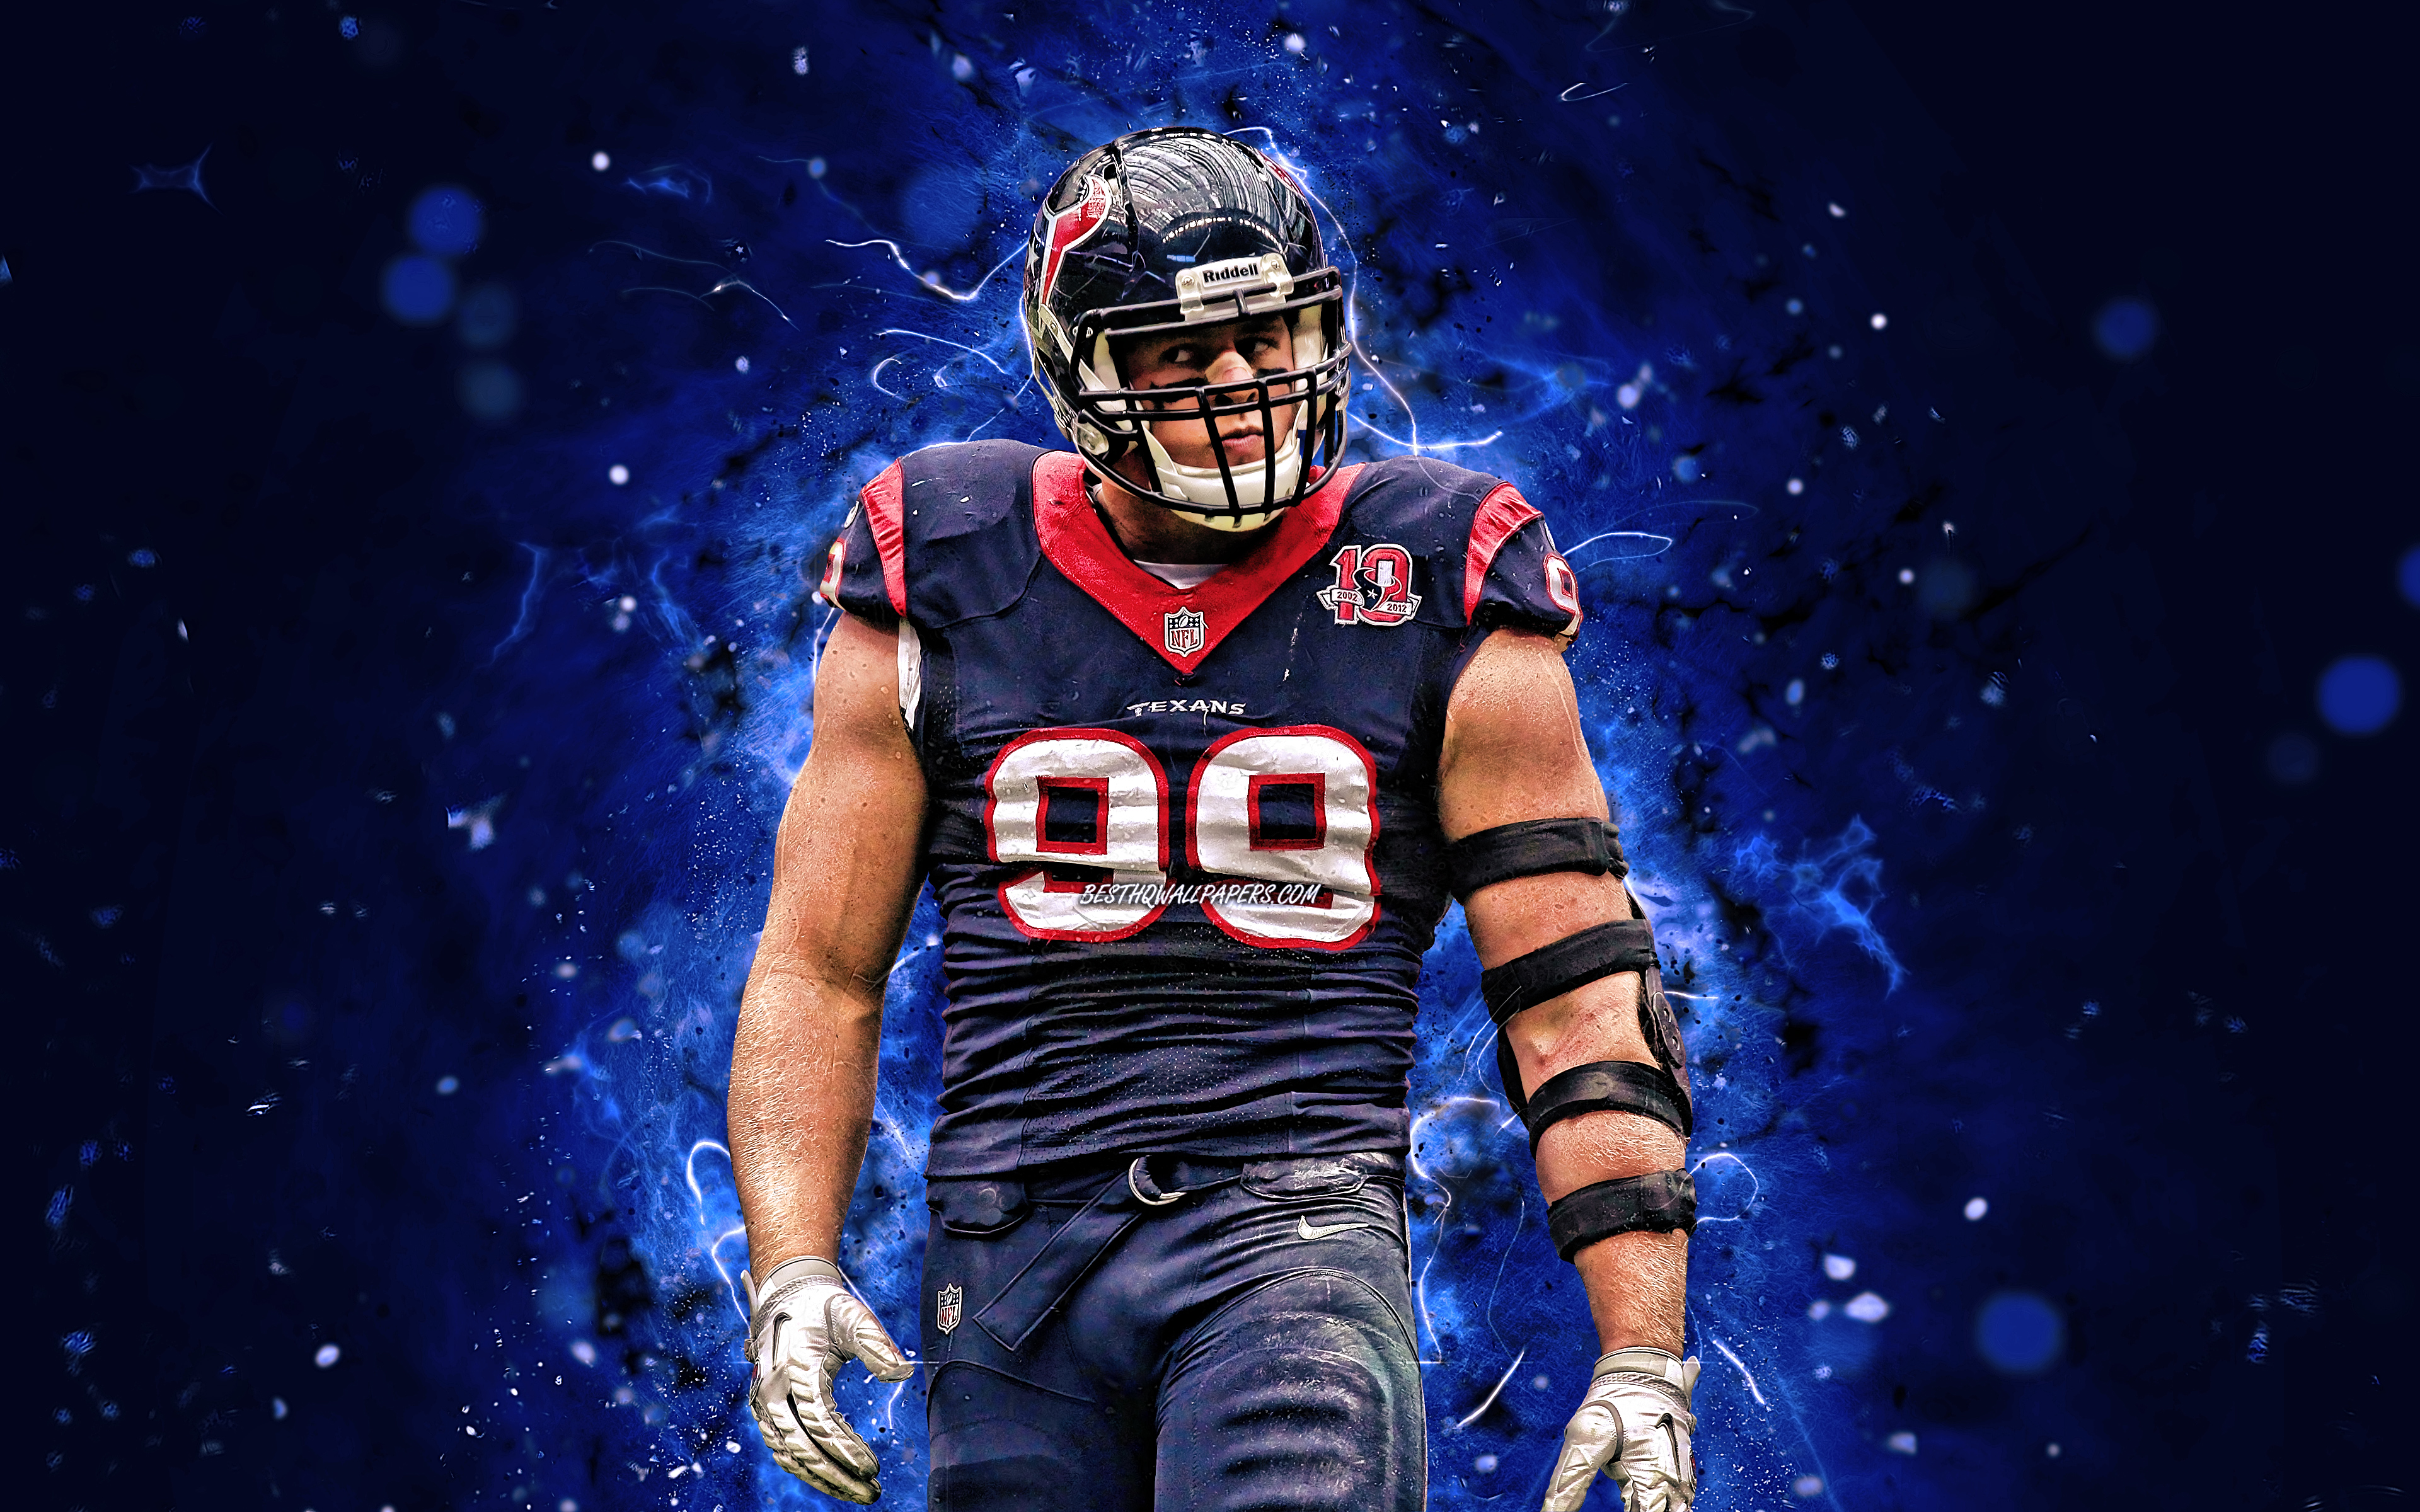 Justin James Watt, 4k, difensore, Houston Texans, football americano, NFL, JJ Watt, National Football League, KC Chiefs, luci al neon, JJ Watt Houston Texans